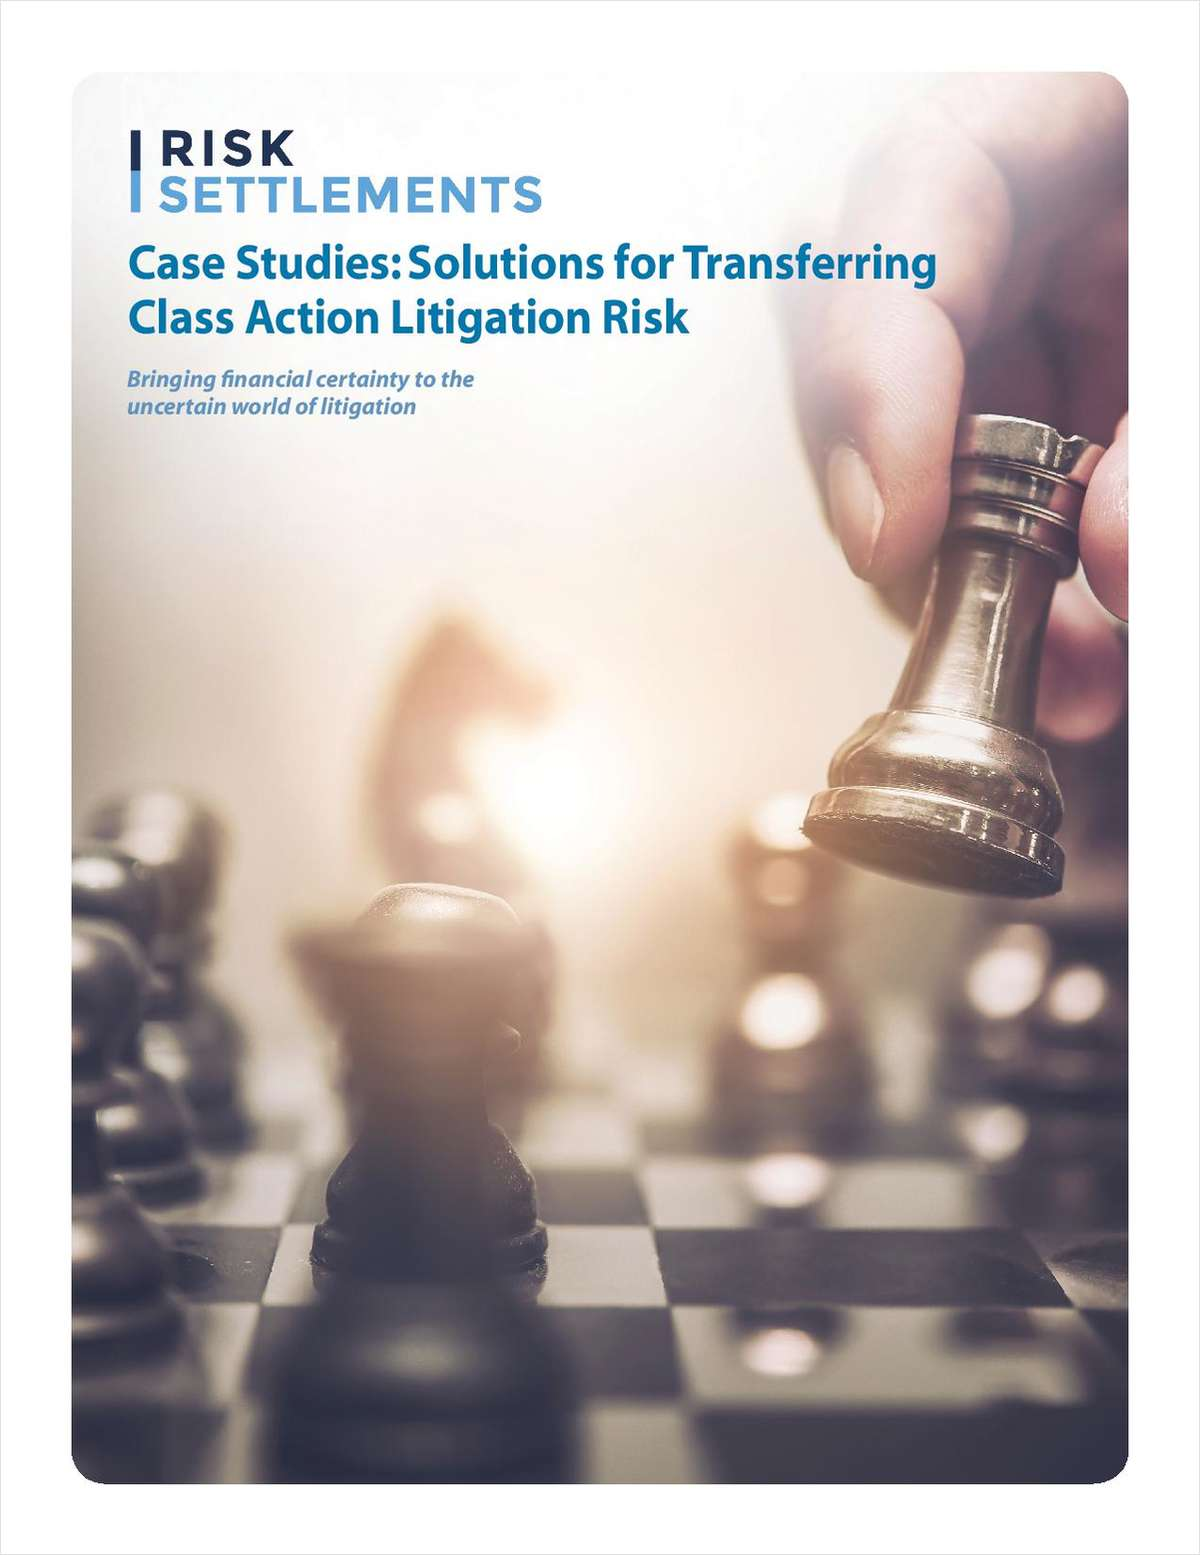 Solutions for Transferring Class Action Litigation Risk